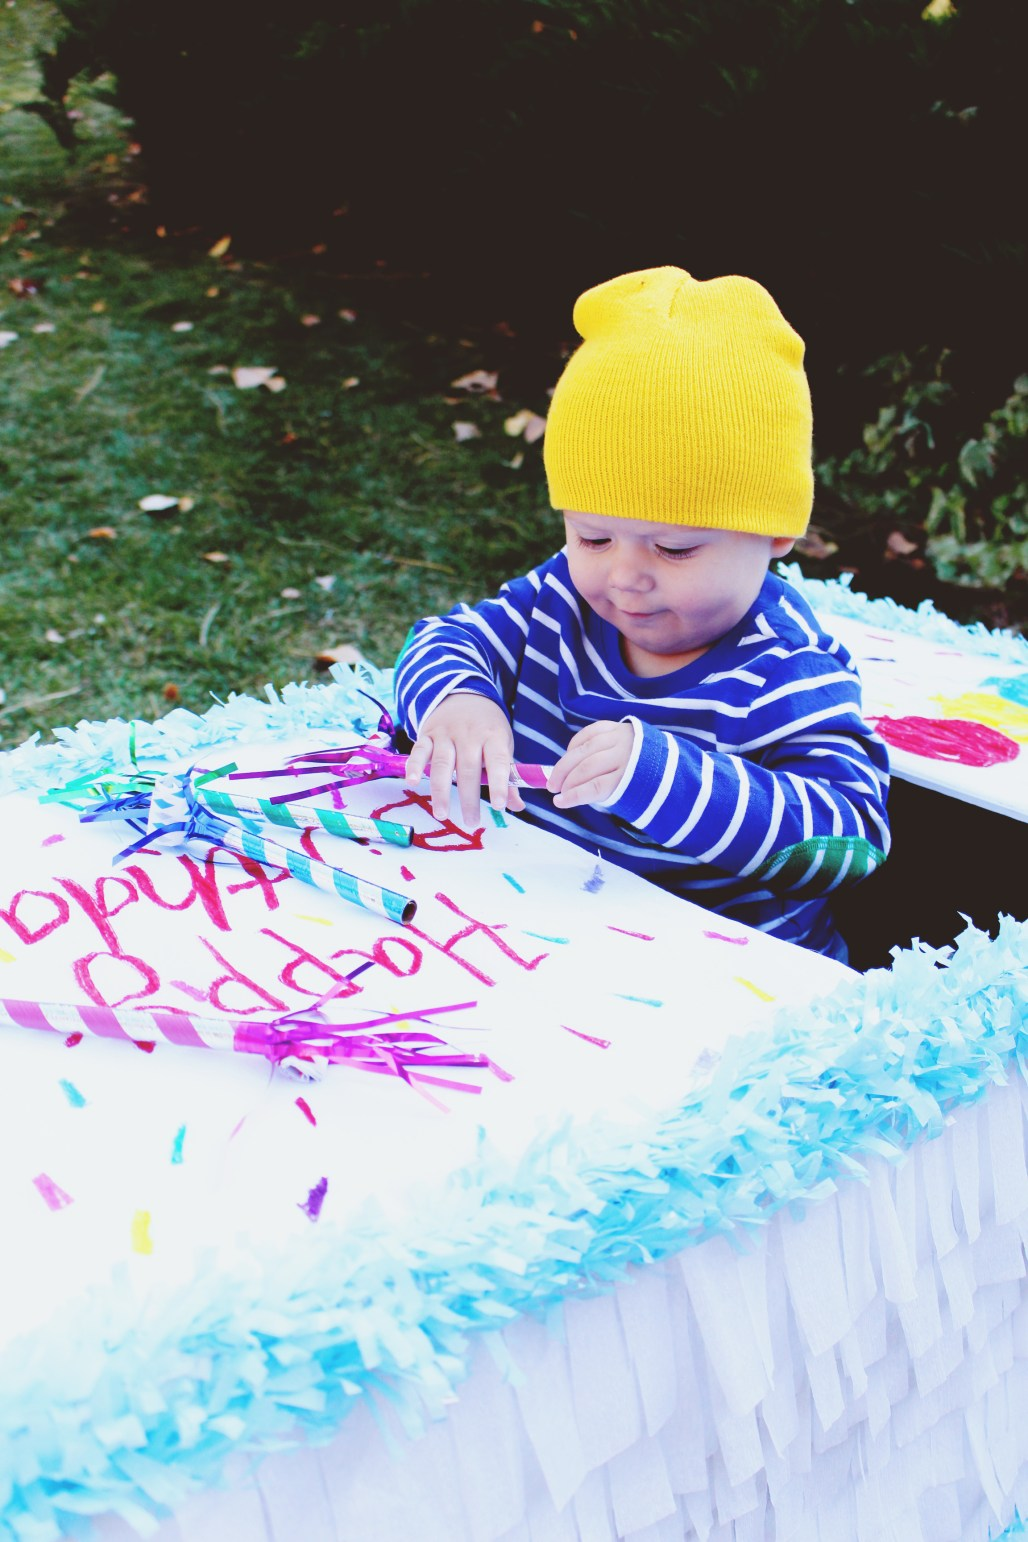 halloween carnival birthday party birthday cake costume with birthday candle boy